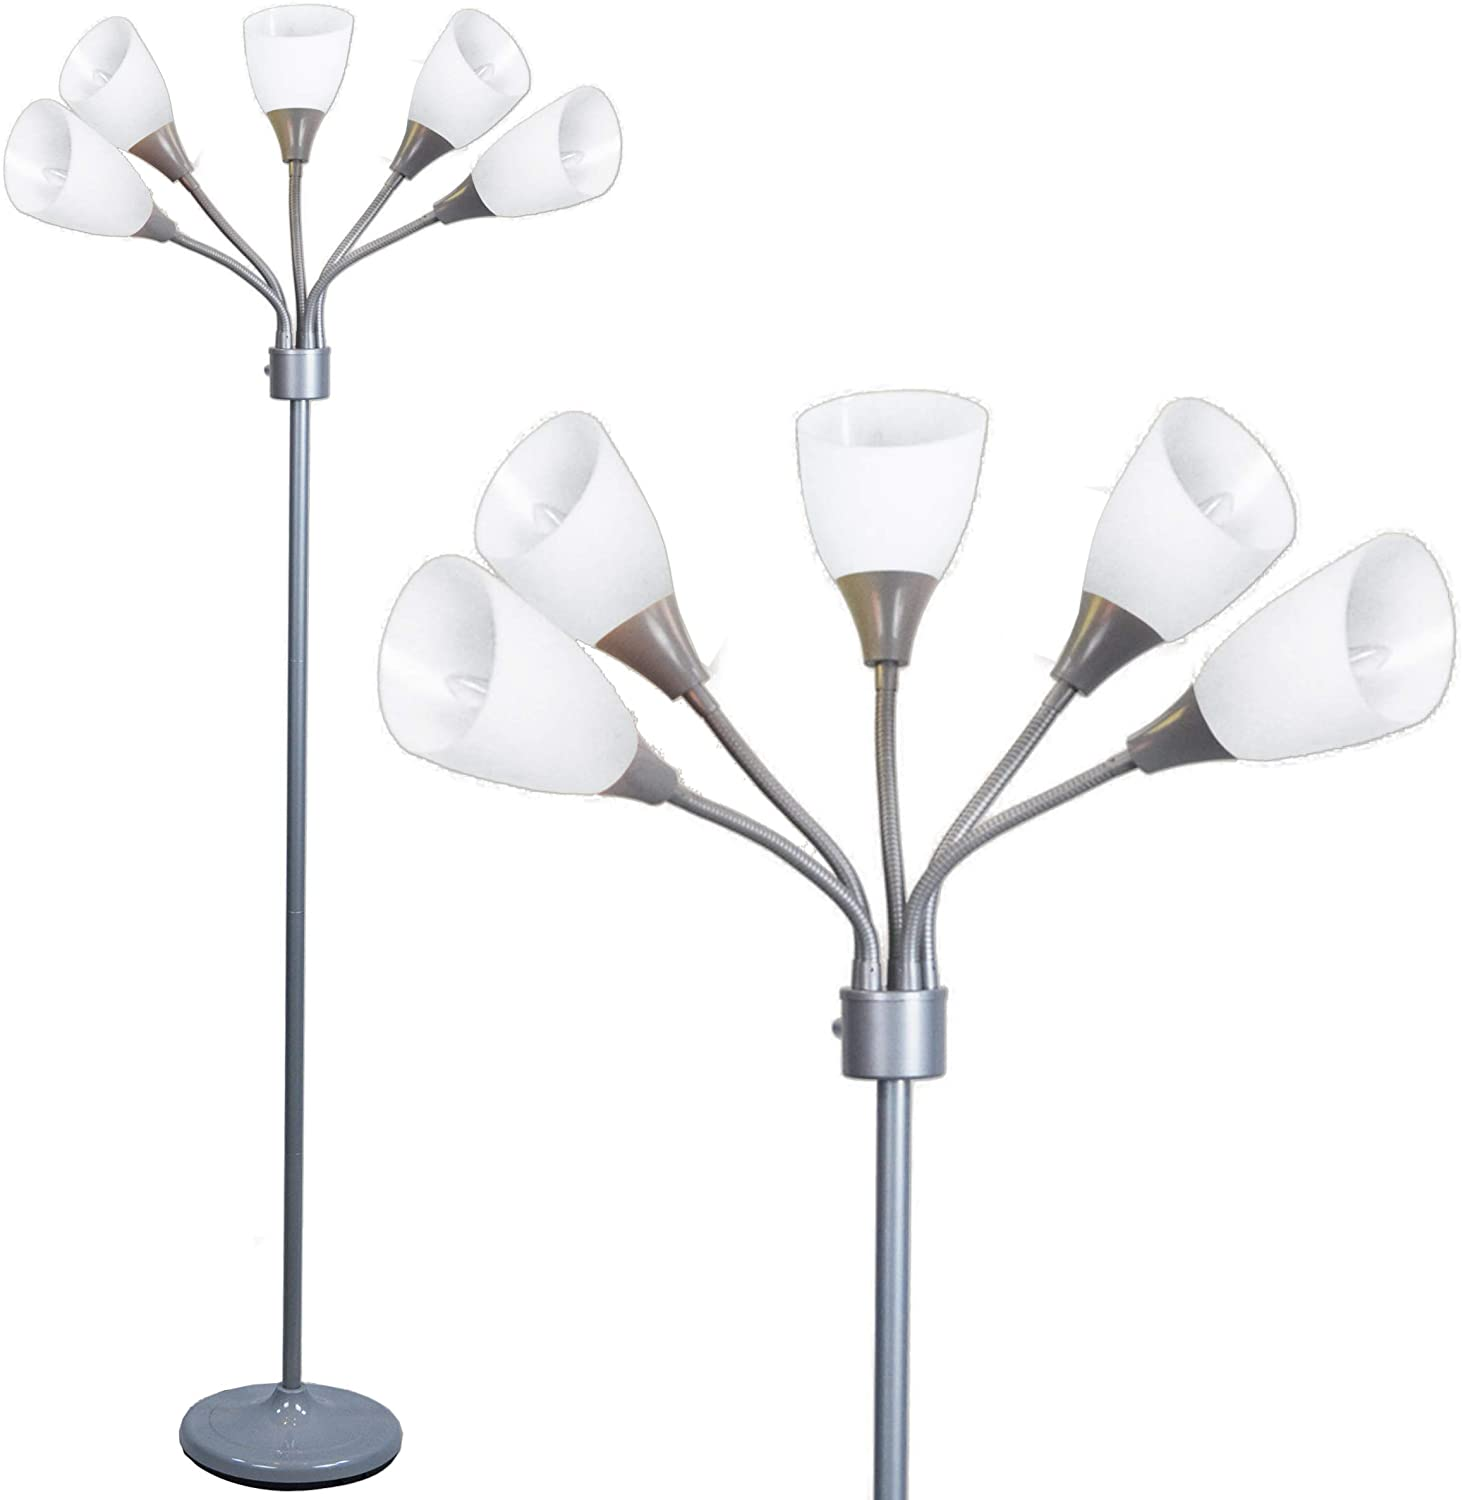 Modern Floor Lamp Room Light by Lightaccents - Medusa Multi Head Standing Lamp Bedroom Light with 5 Adjustable White Acrylic Reading Shades Room Light (Silver) - -